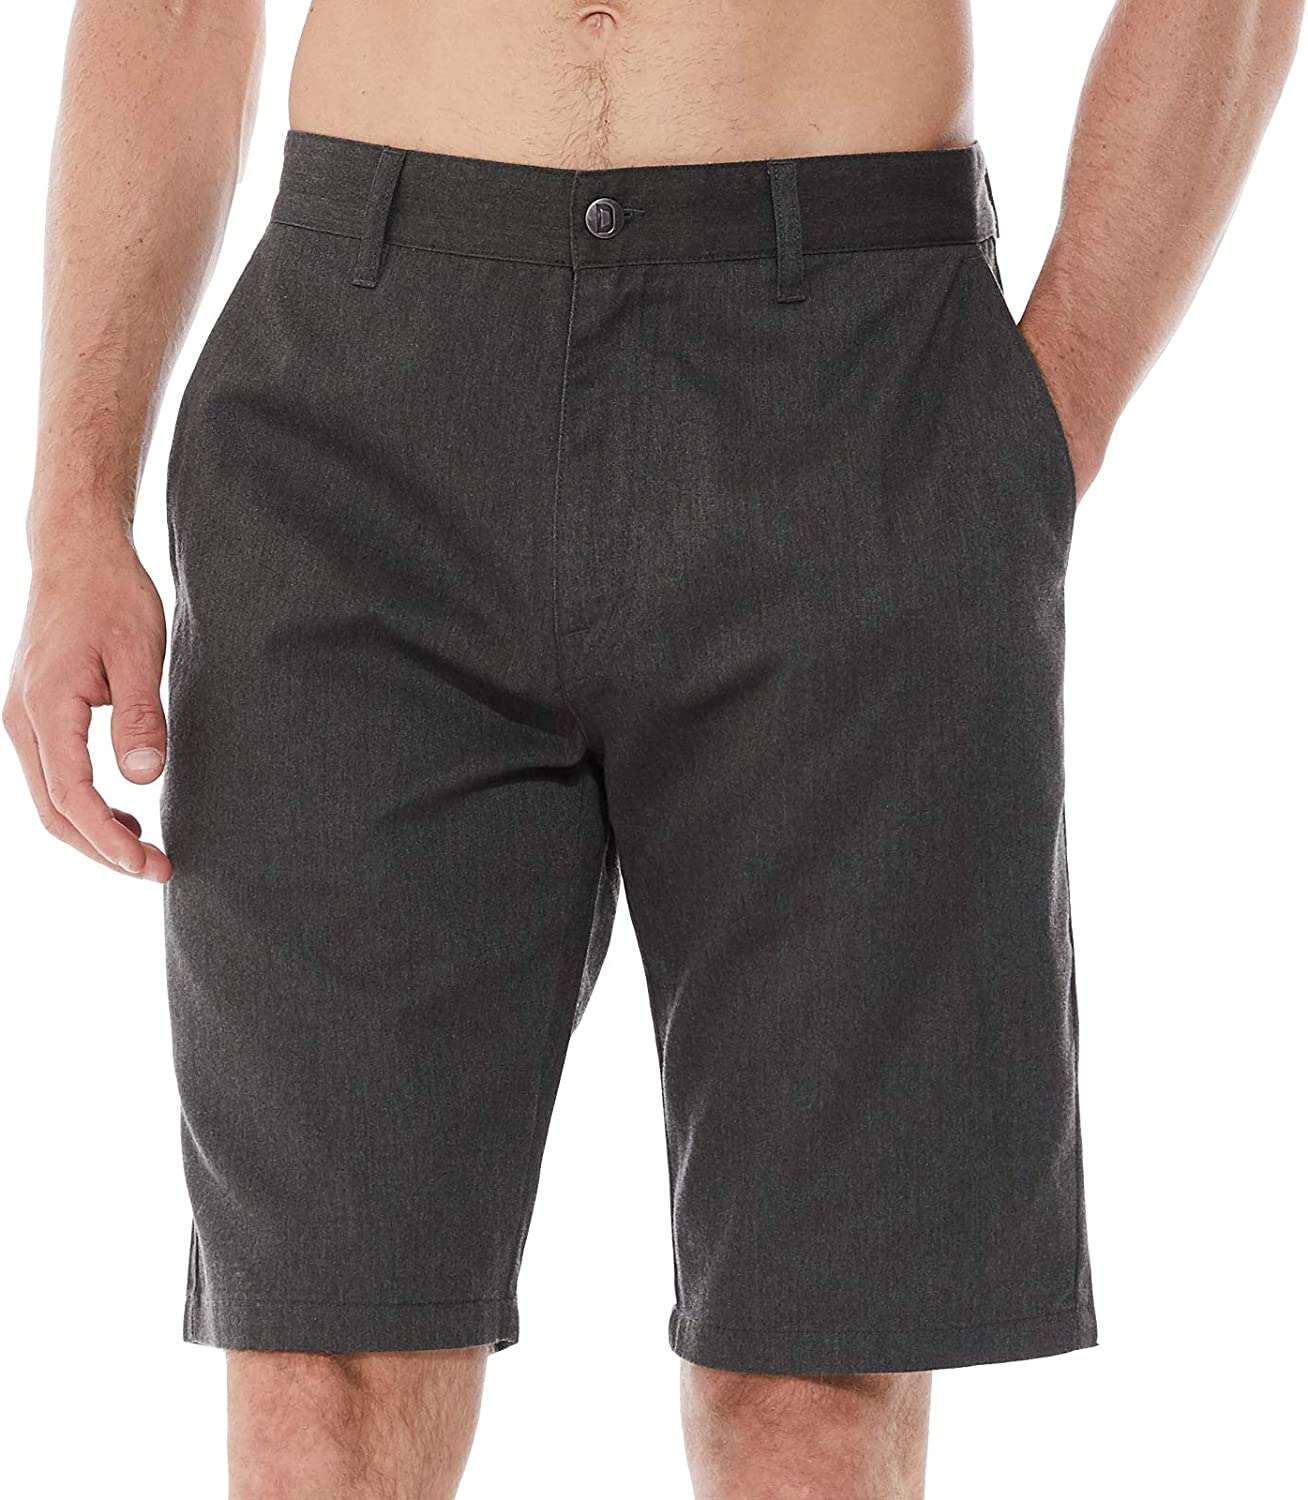 DINOGREY Relaxed Fit Outlet ☆ Free Shipping Max 57% OFF Men's Chino Front Flat Shorts Zip with